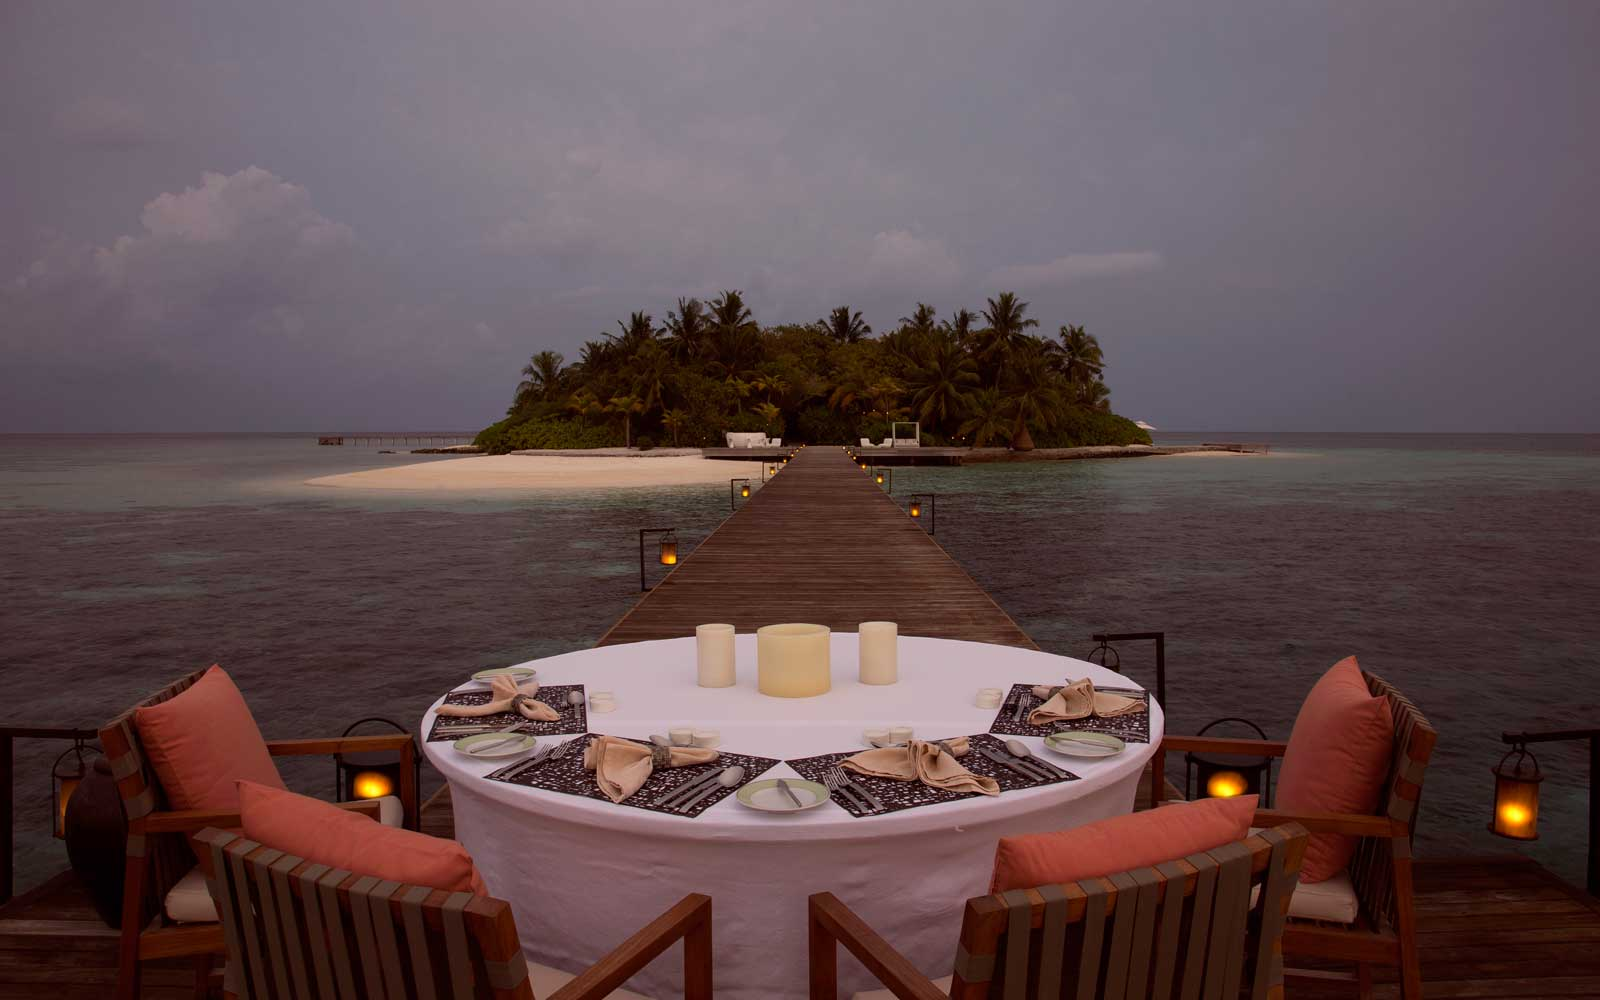 Coco Prive Lush Private Island in Maldives